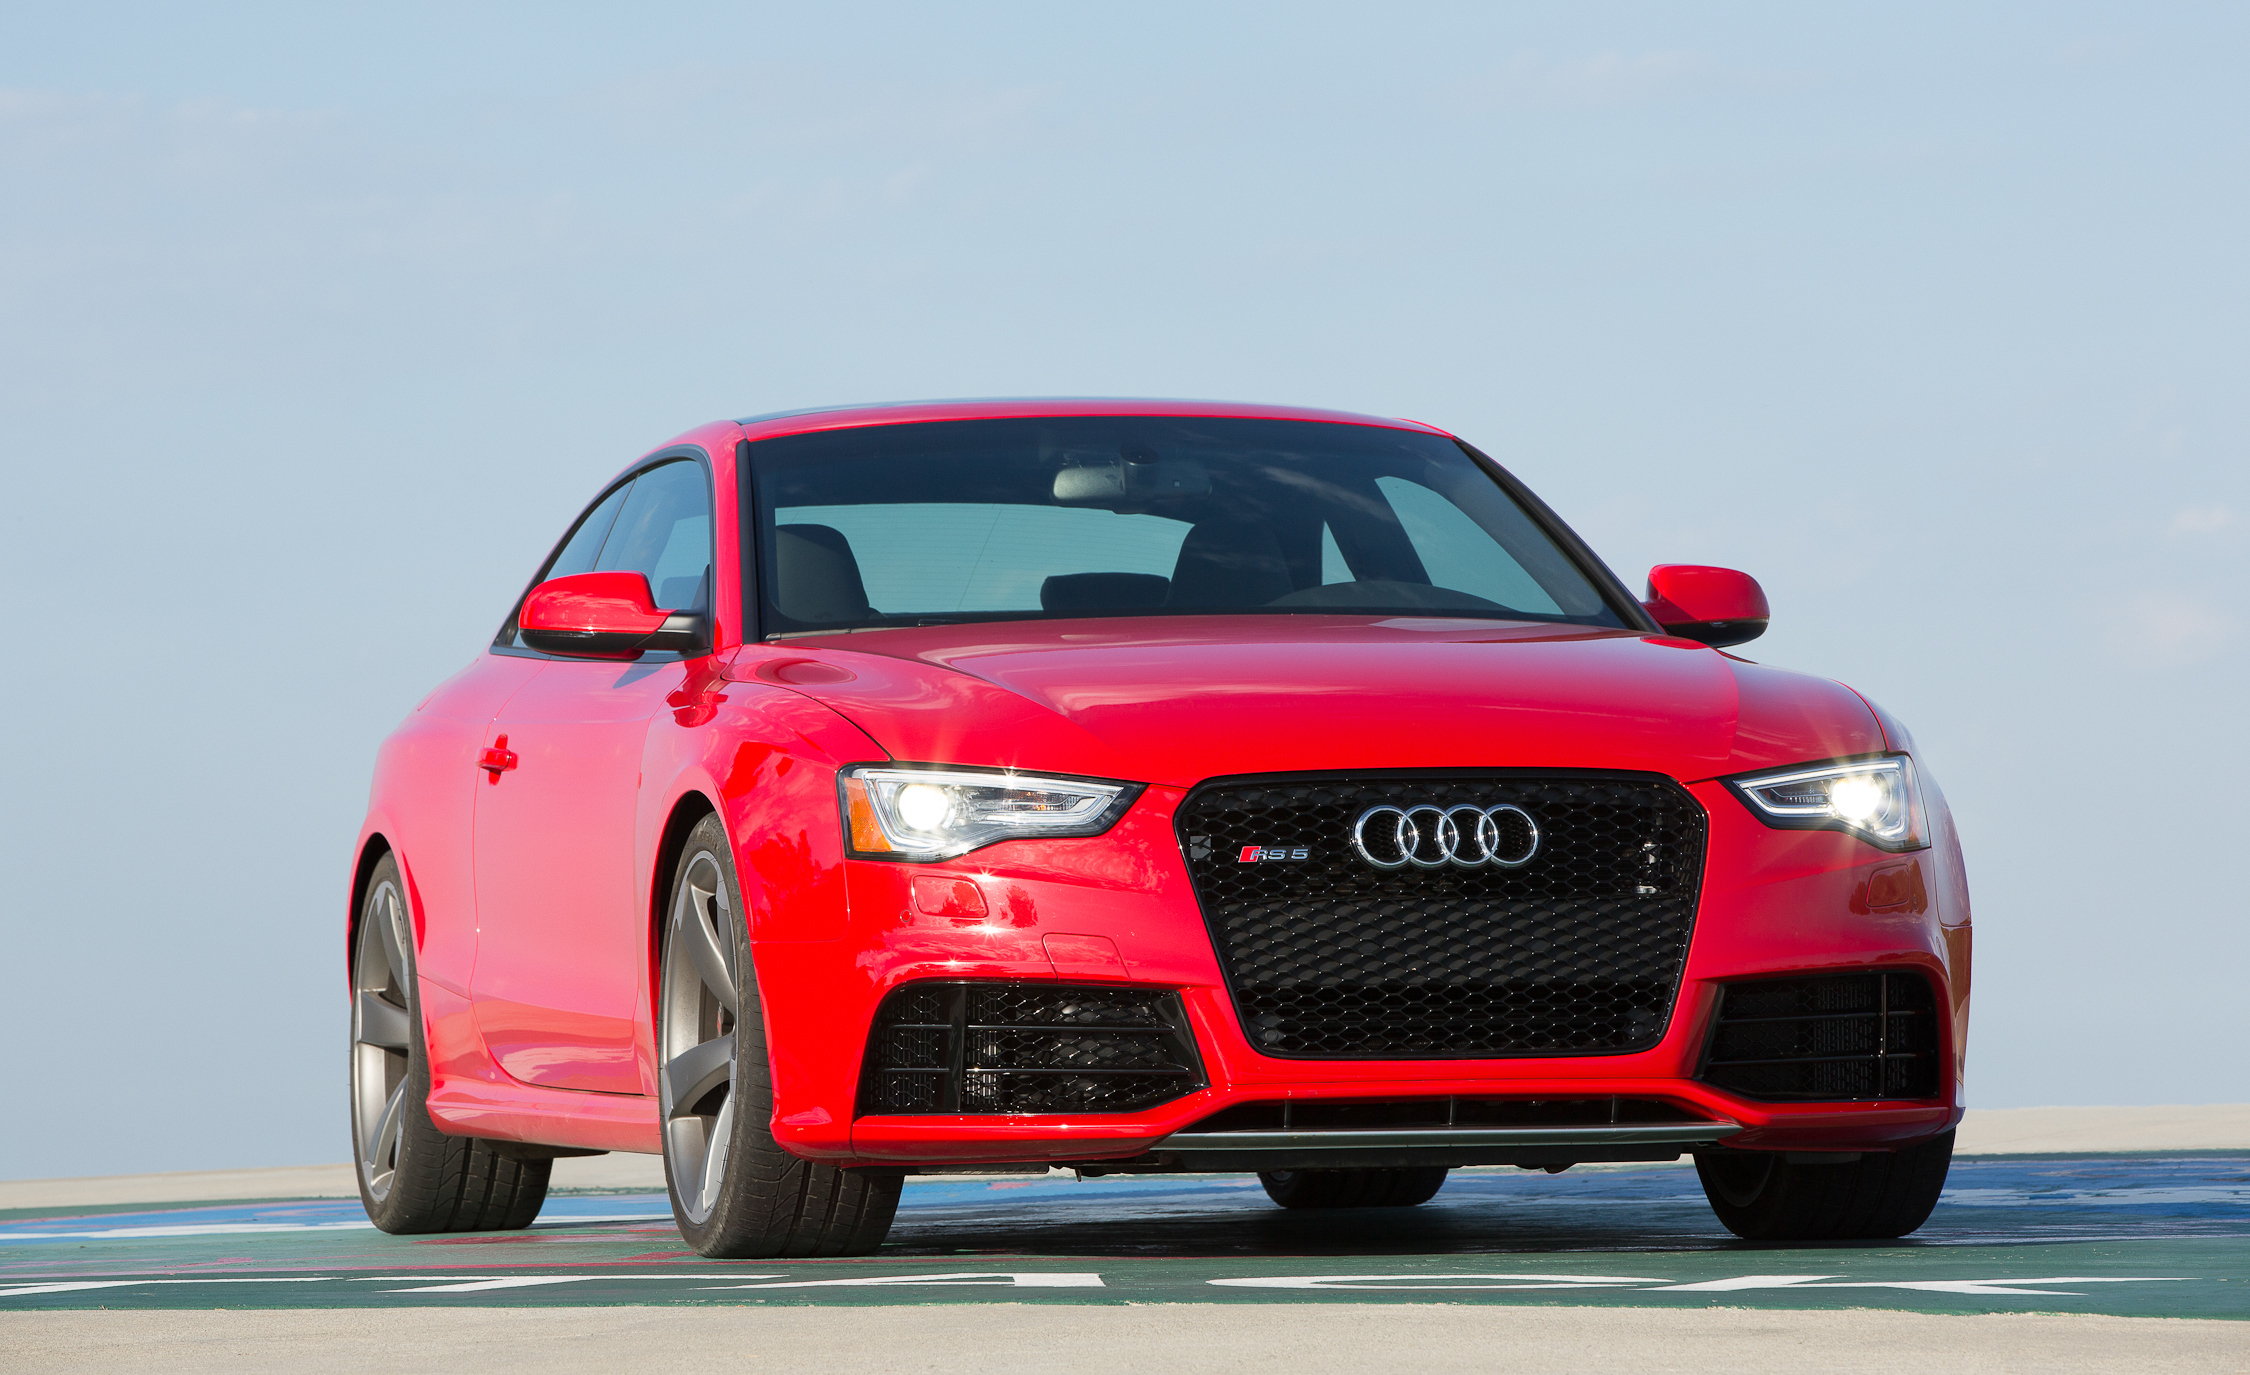 2013 Audi RS 5 Exterior Front And Side (Photo 5 of 41)